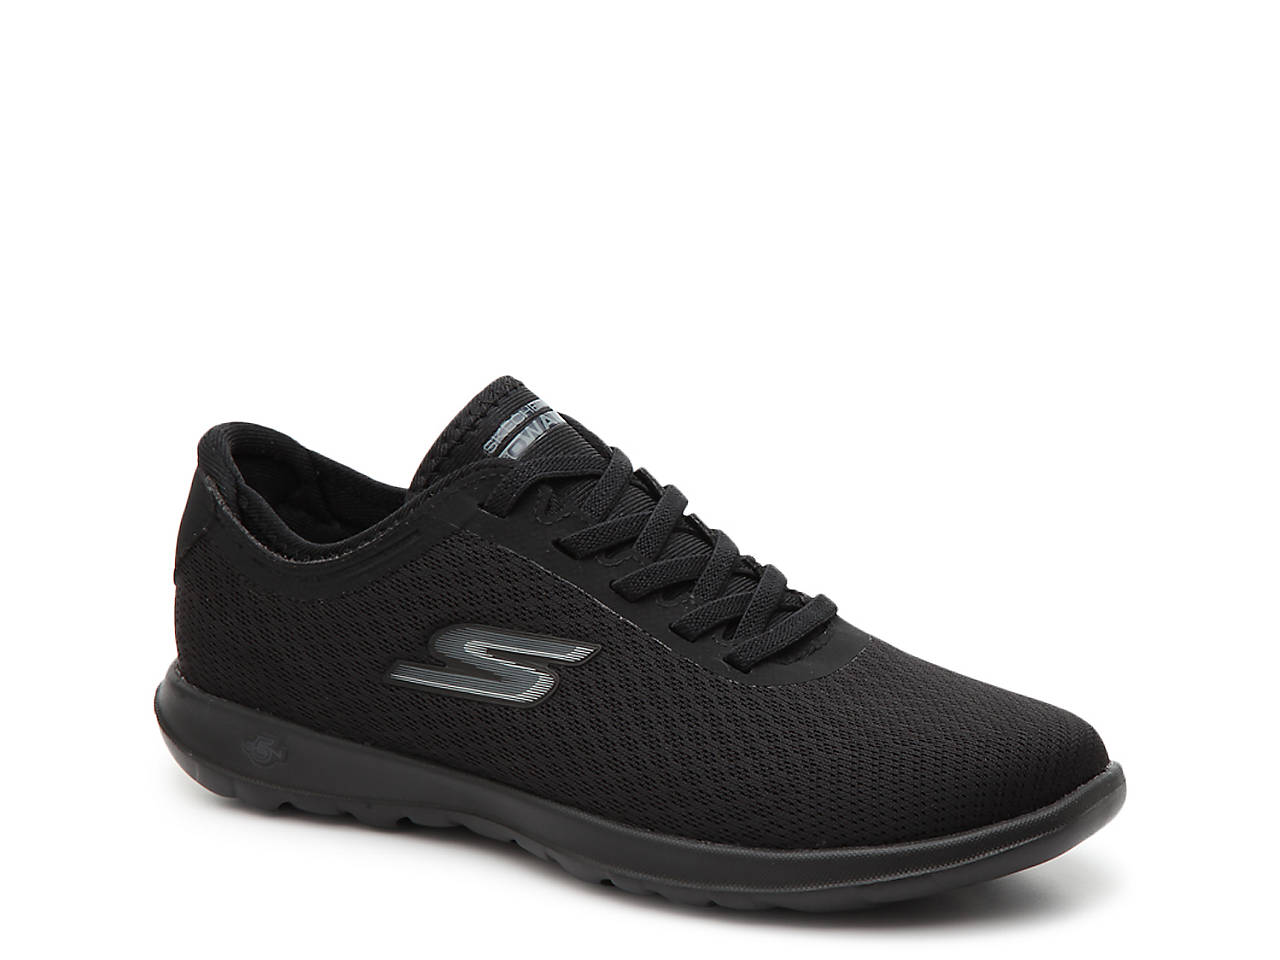 738e8b0fec3 Skechers GoWalk Lite Slip-On Sneaker Women s Shoes